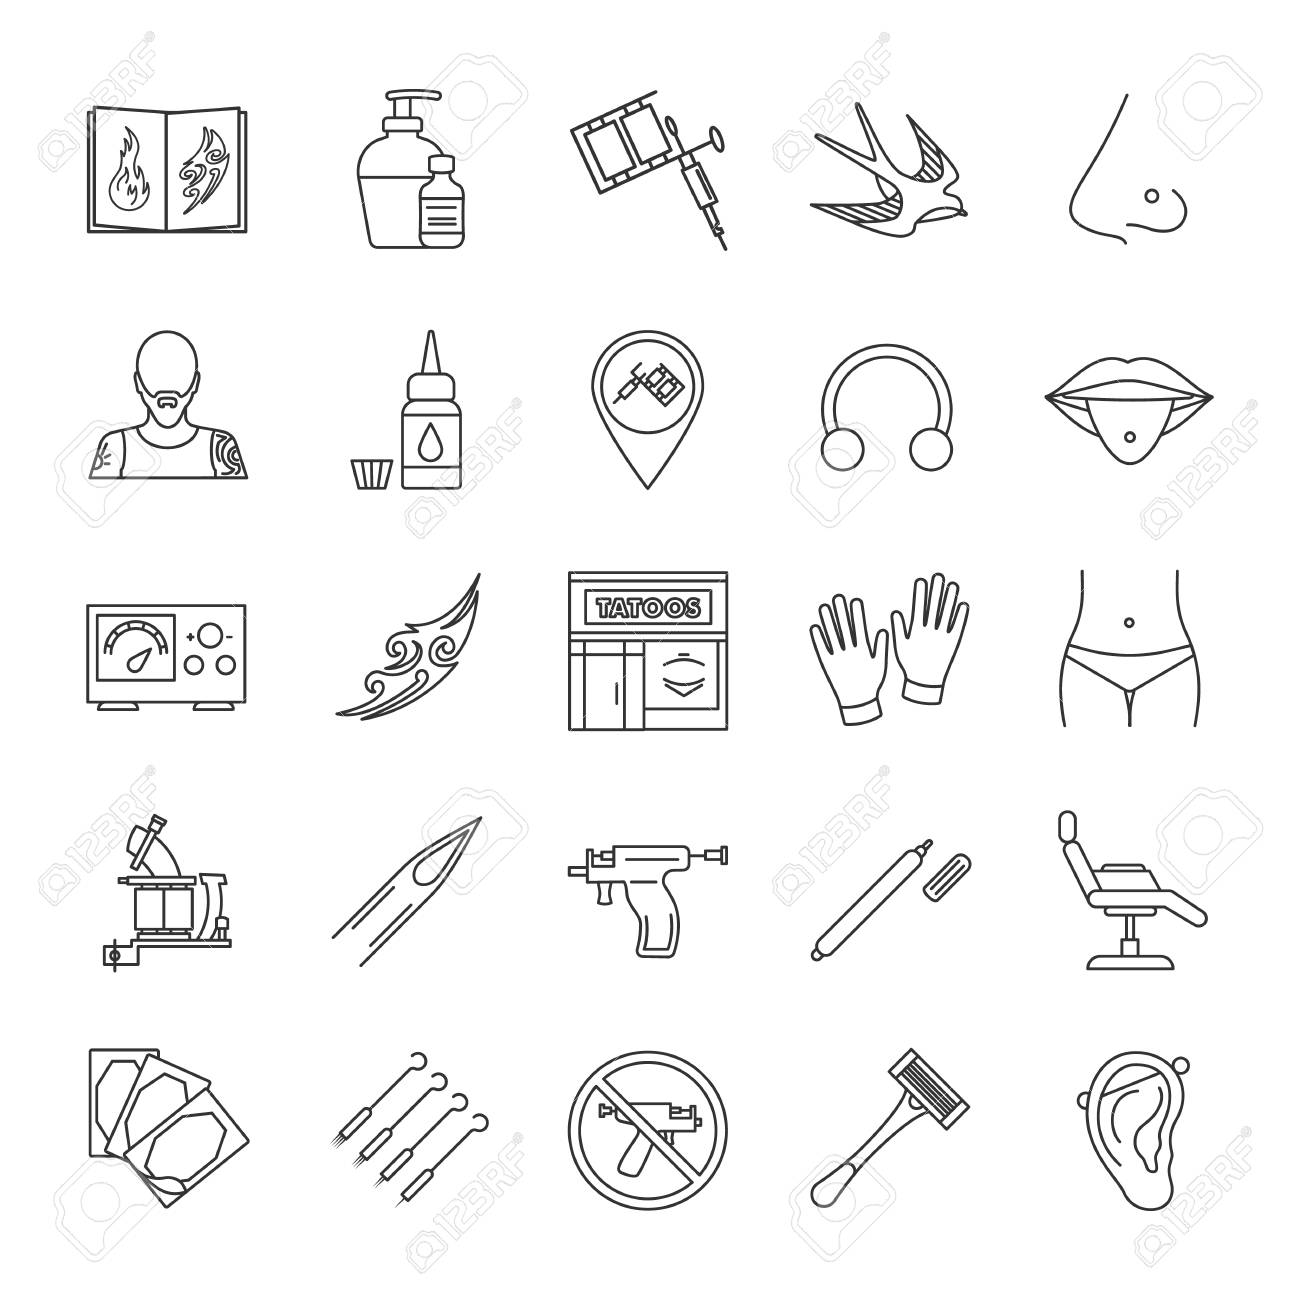 Tattoo Studio Linear Icons Set Piercing Service Tattoo Sketches Royalty Free Cliparts Vectors And Stock Illustration Image 103763787